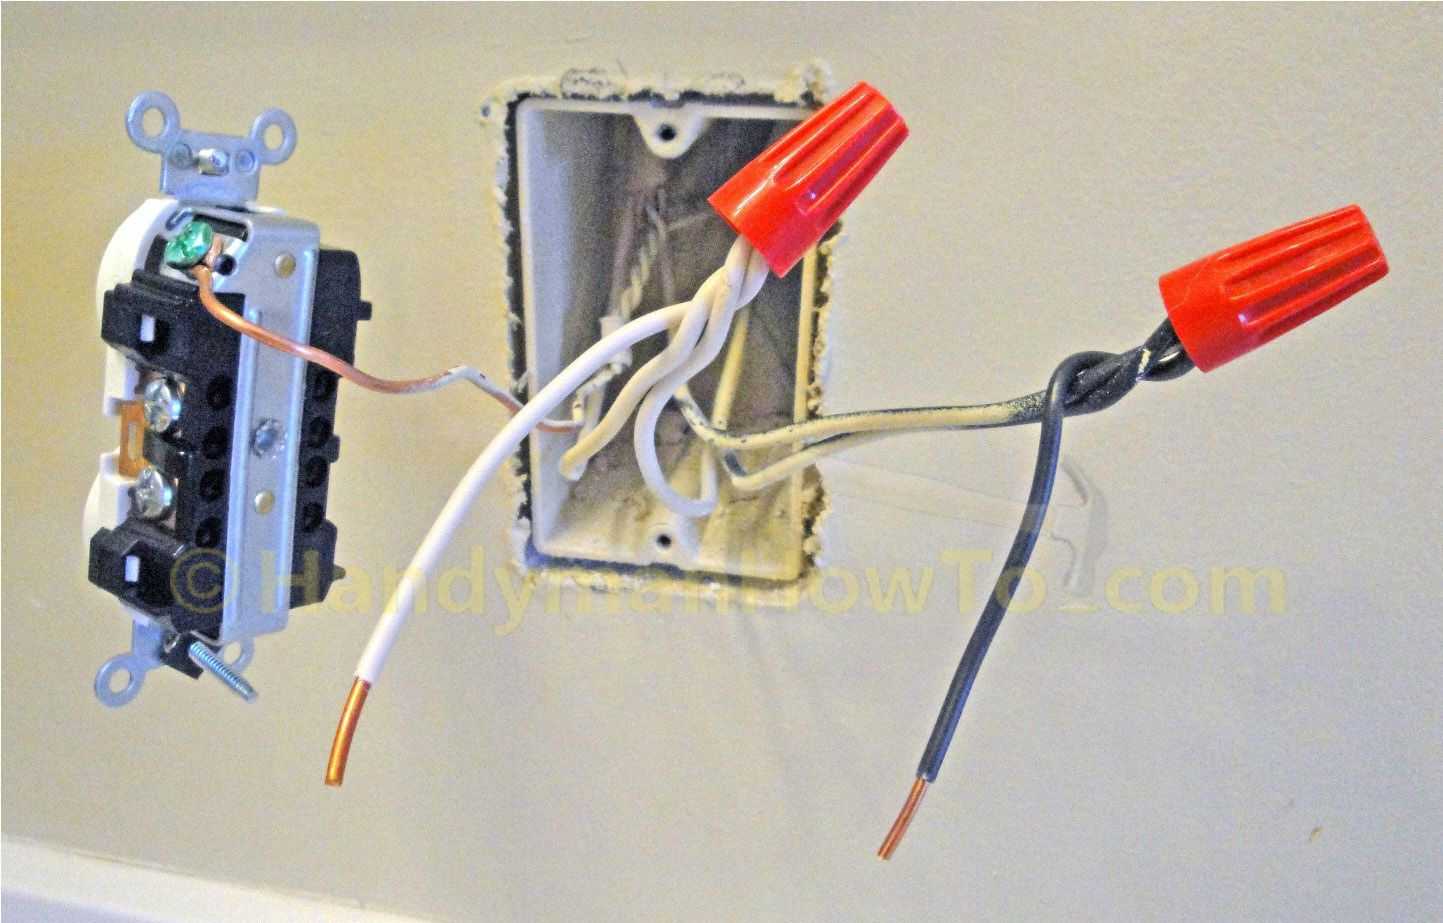 backwiring an electrical outlet in parallel with pigtail connections rh pinterest com Electrical Outlet Wiring Diagram Wiring Multiple Outlets Together